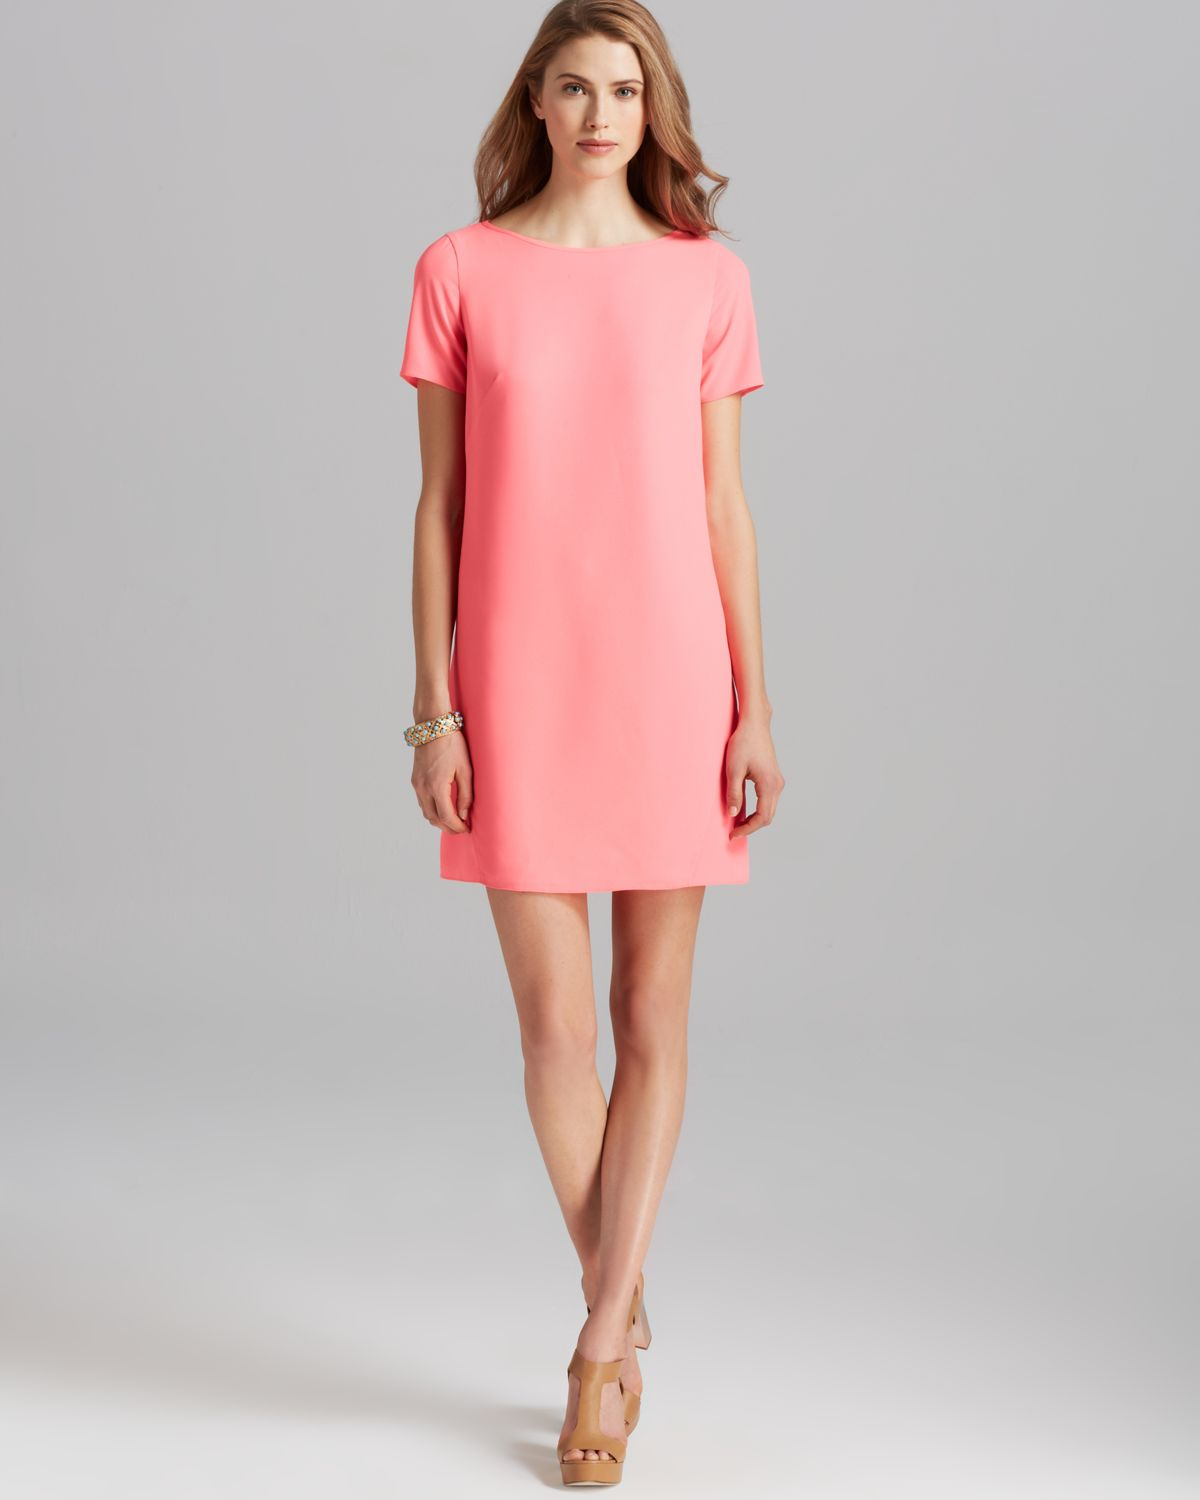 Shoshanna Dress Short Sleeve Crepe Open Back Shift in Pink | Lyst